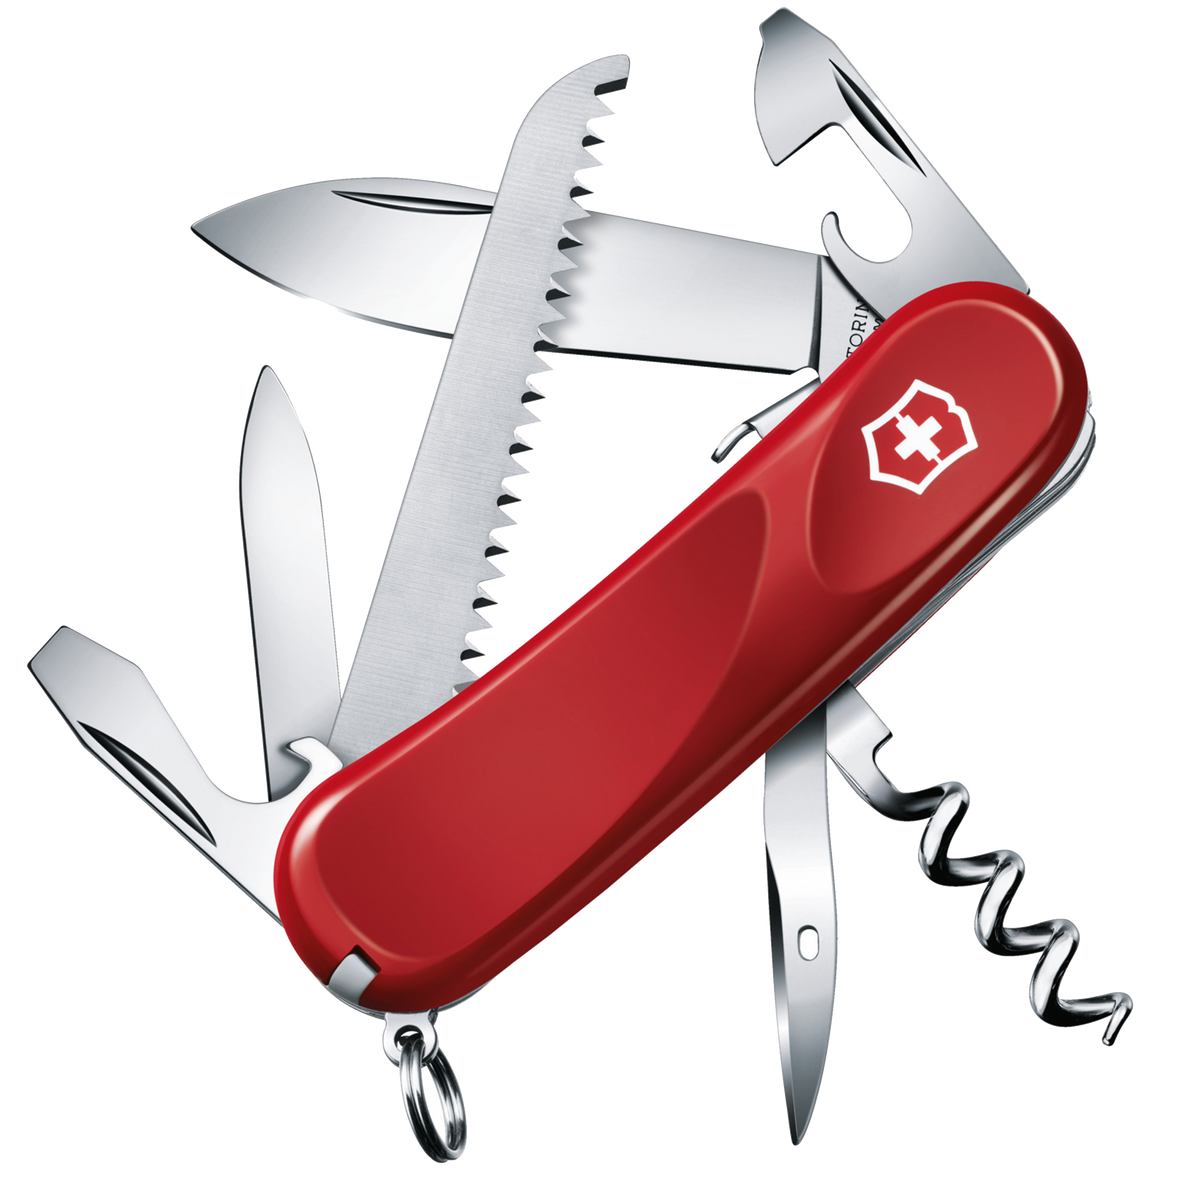 Victorinox - Medium Swiss Army Knife - Evolution S13